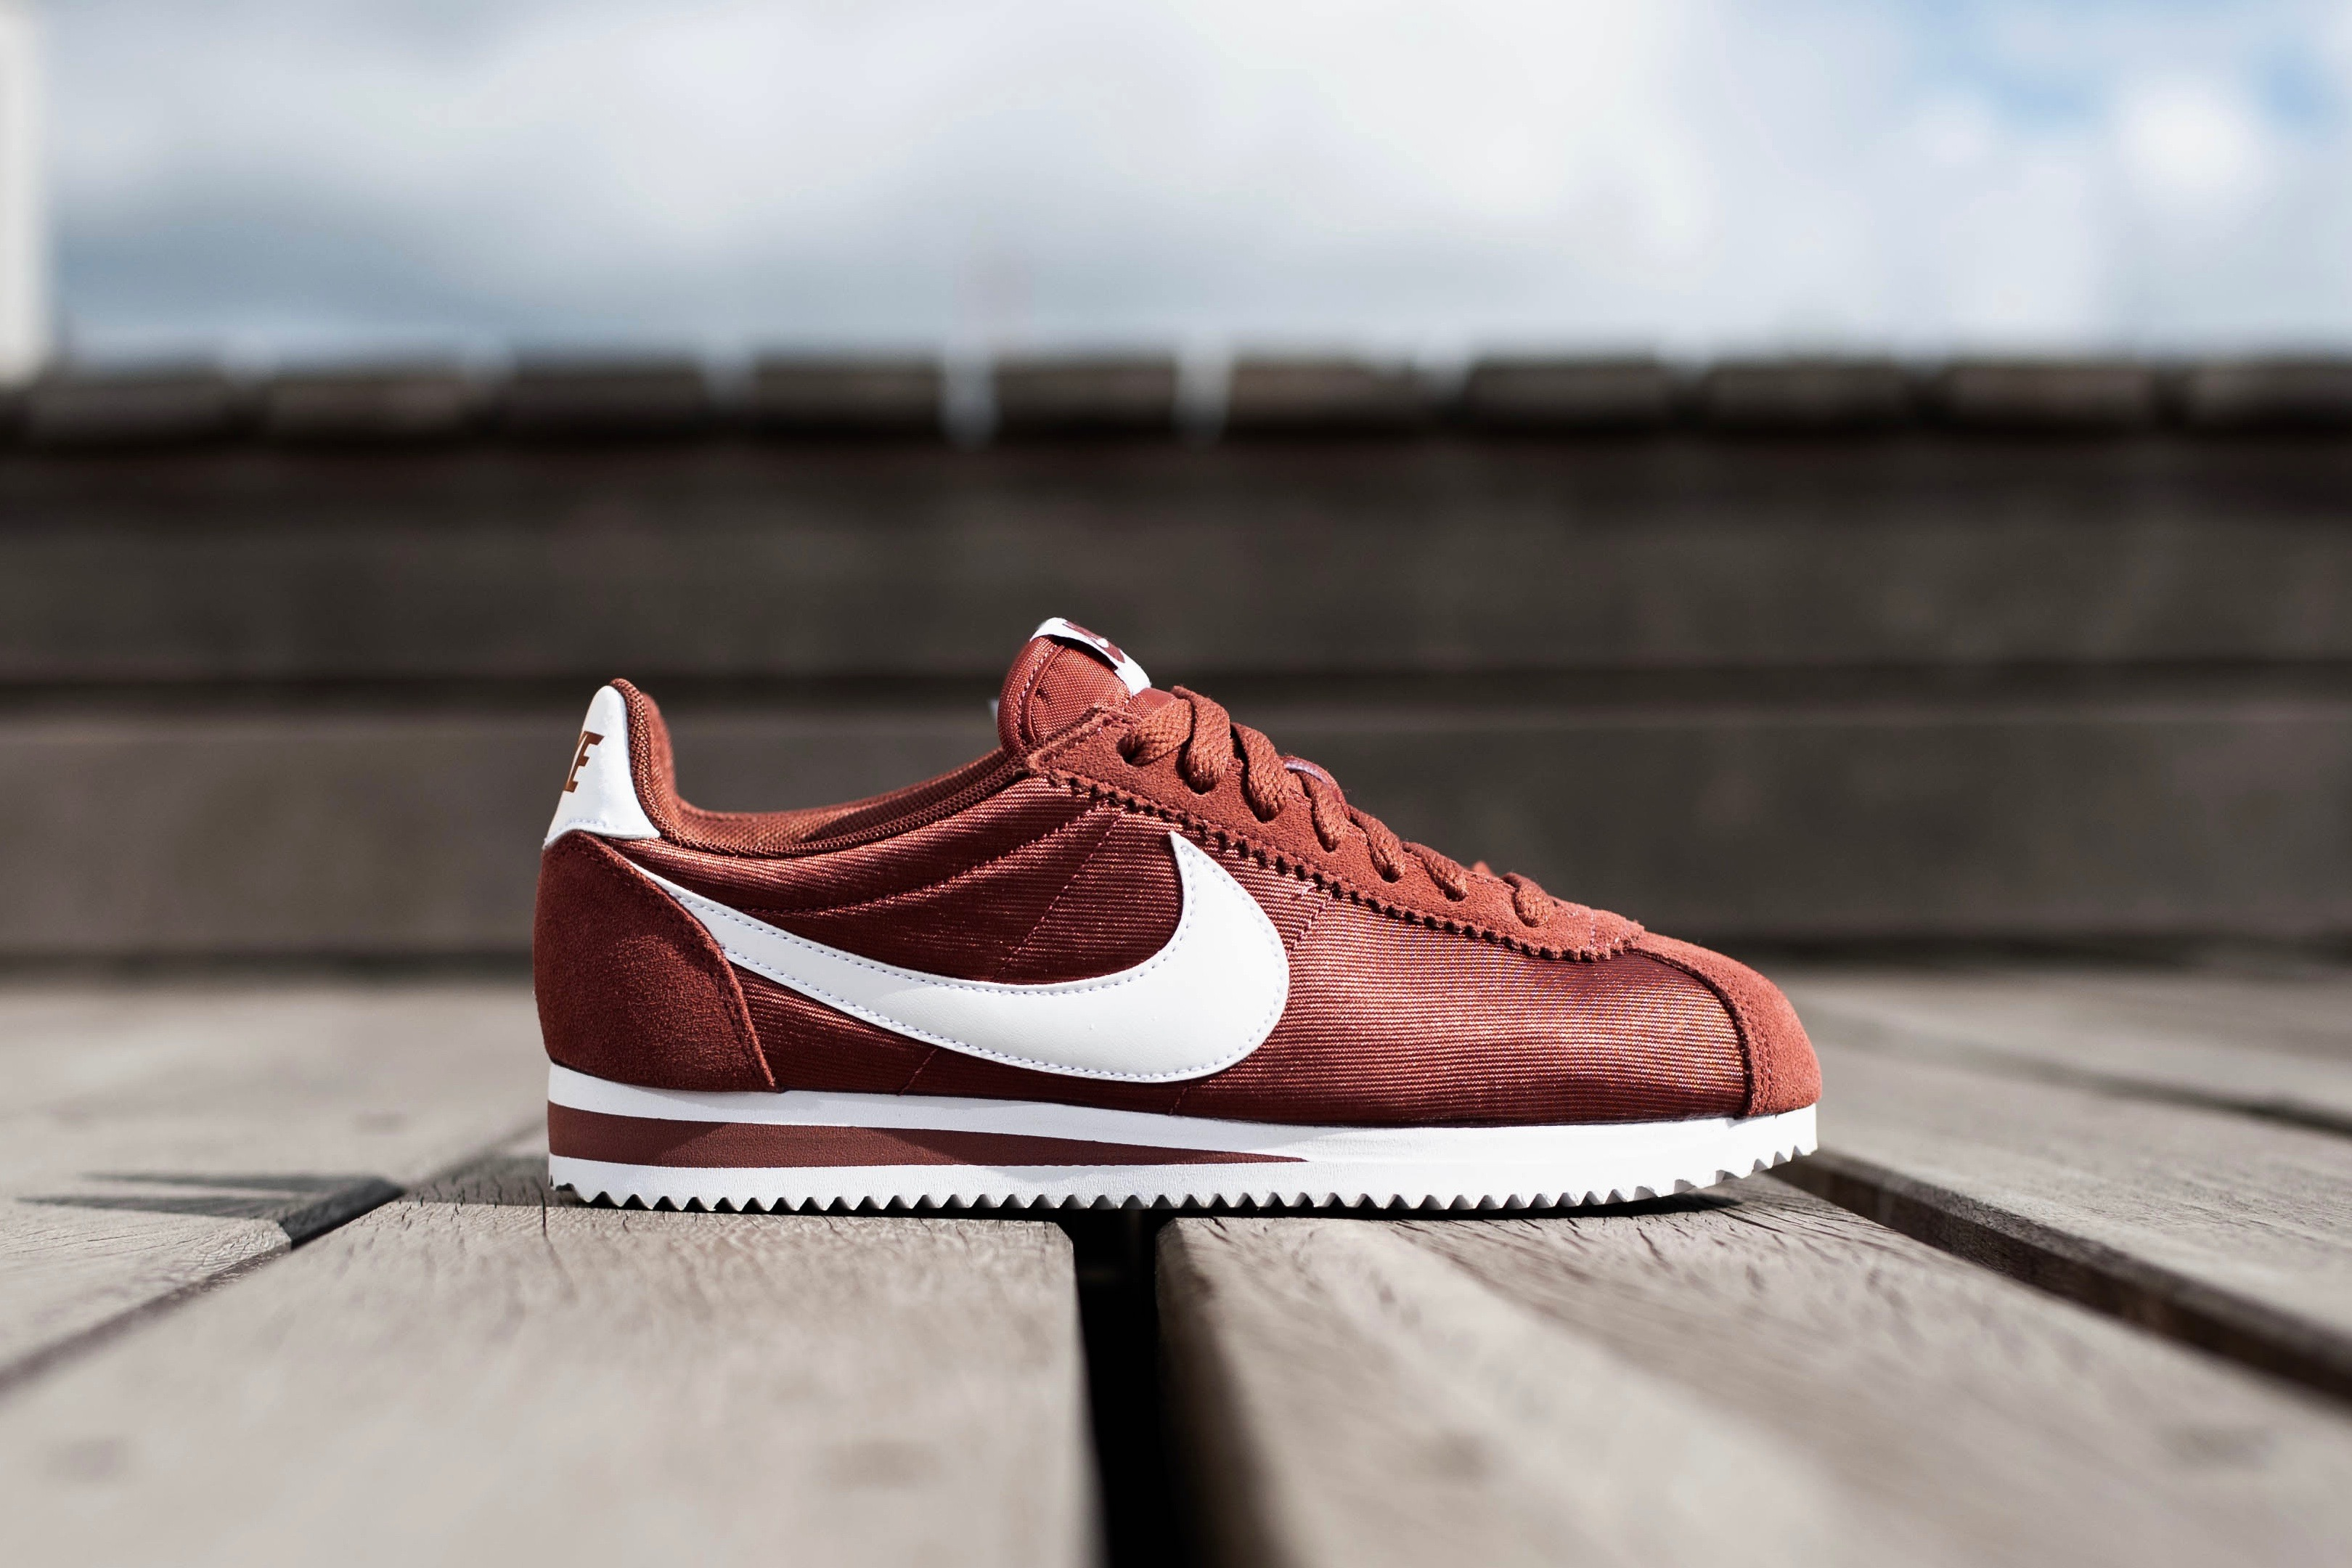 fast delivery performance sportswear for whole family Nike W Classic Cortez Nylon - Red Sepia / White